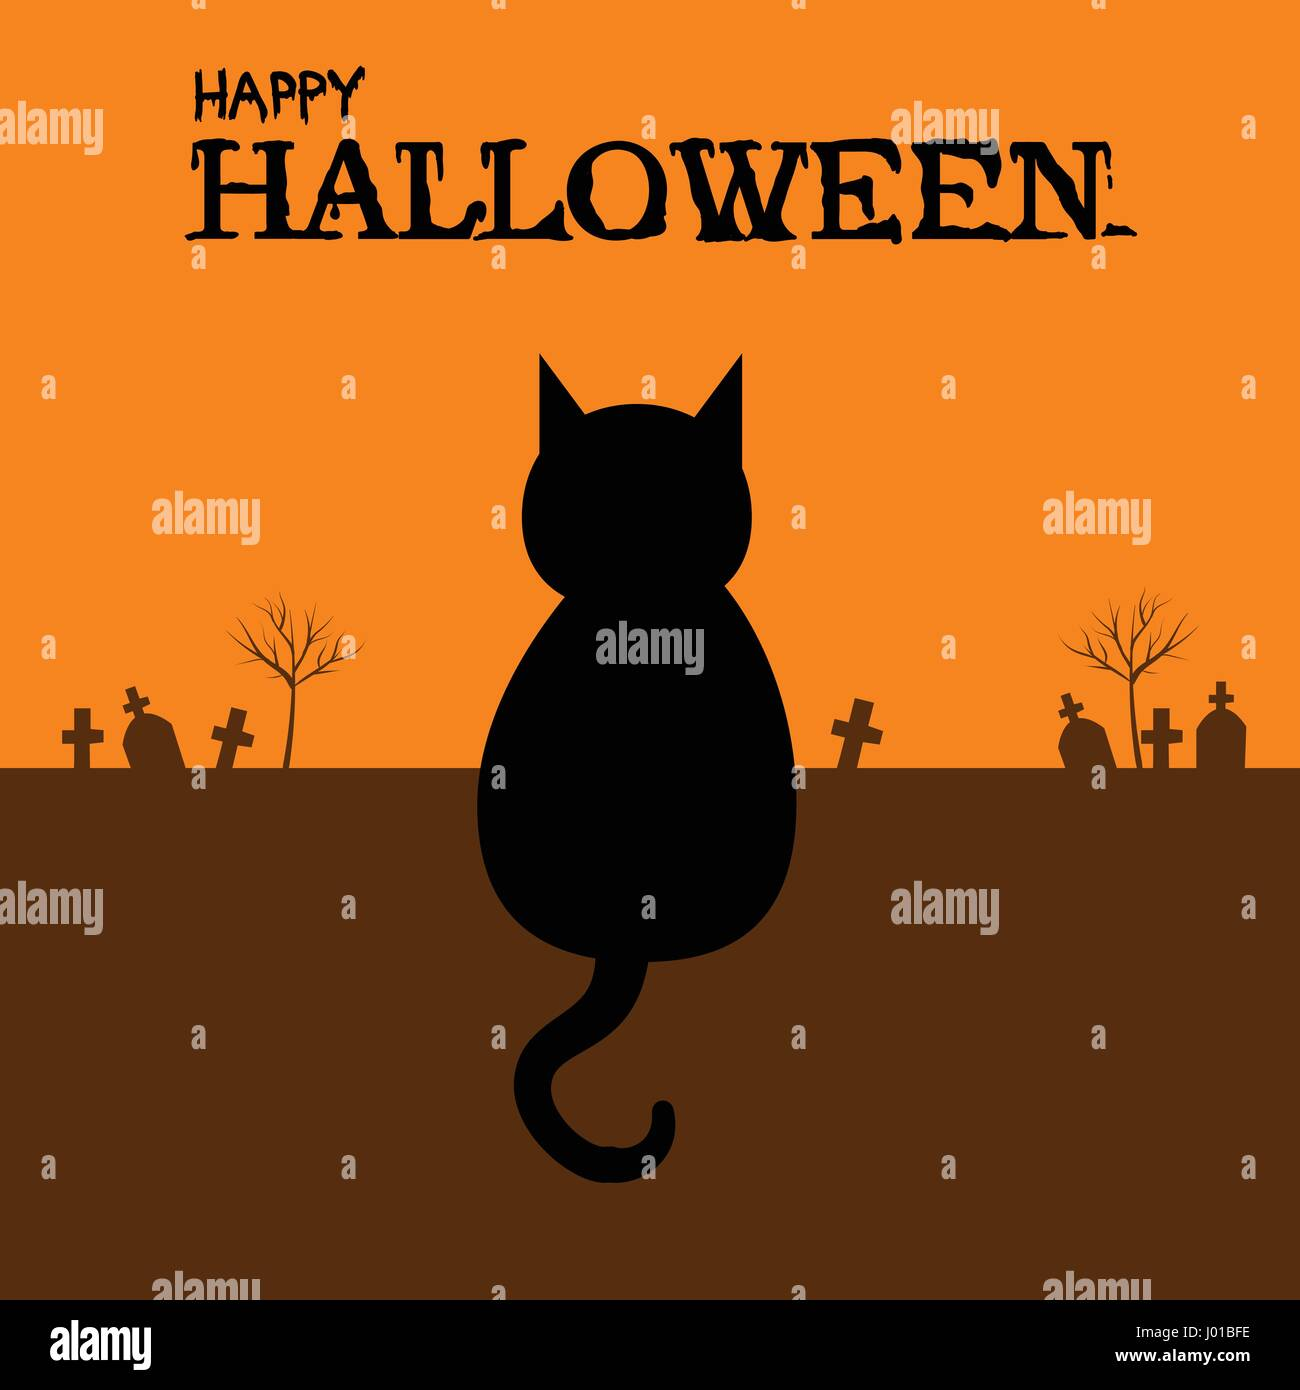 Happy Halloween with black cat sitting on ground in graveyard - Stock Vector